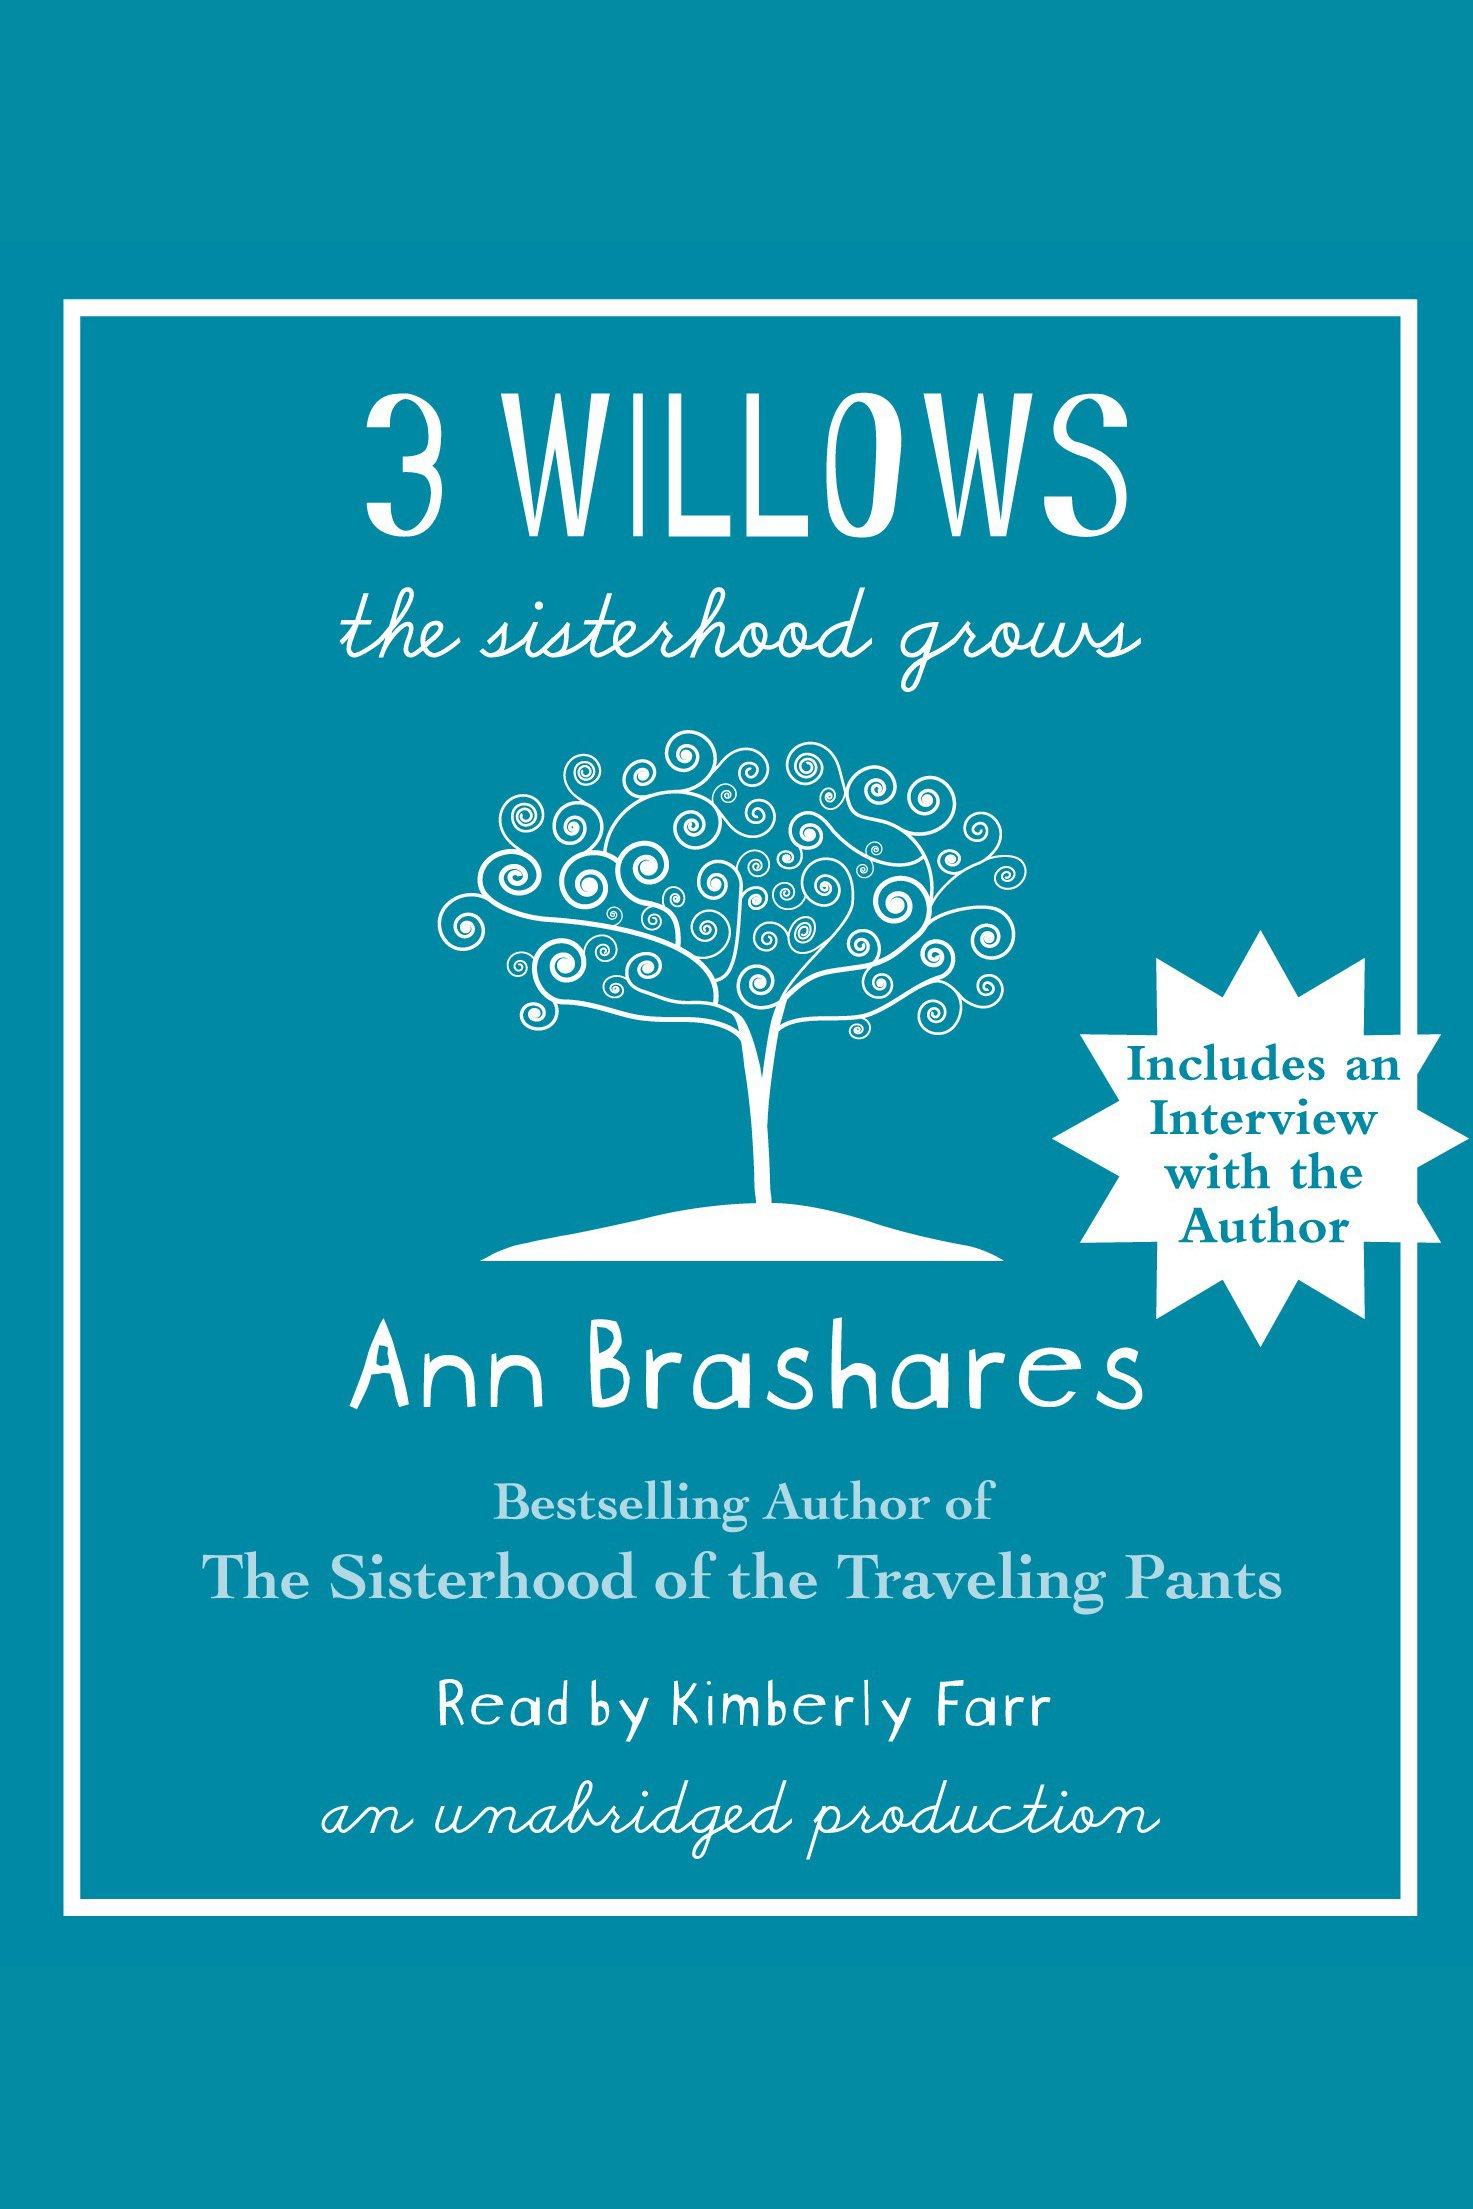 3 Willows cover image